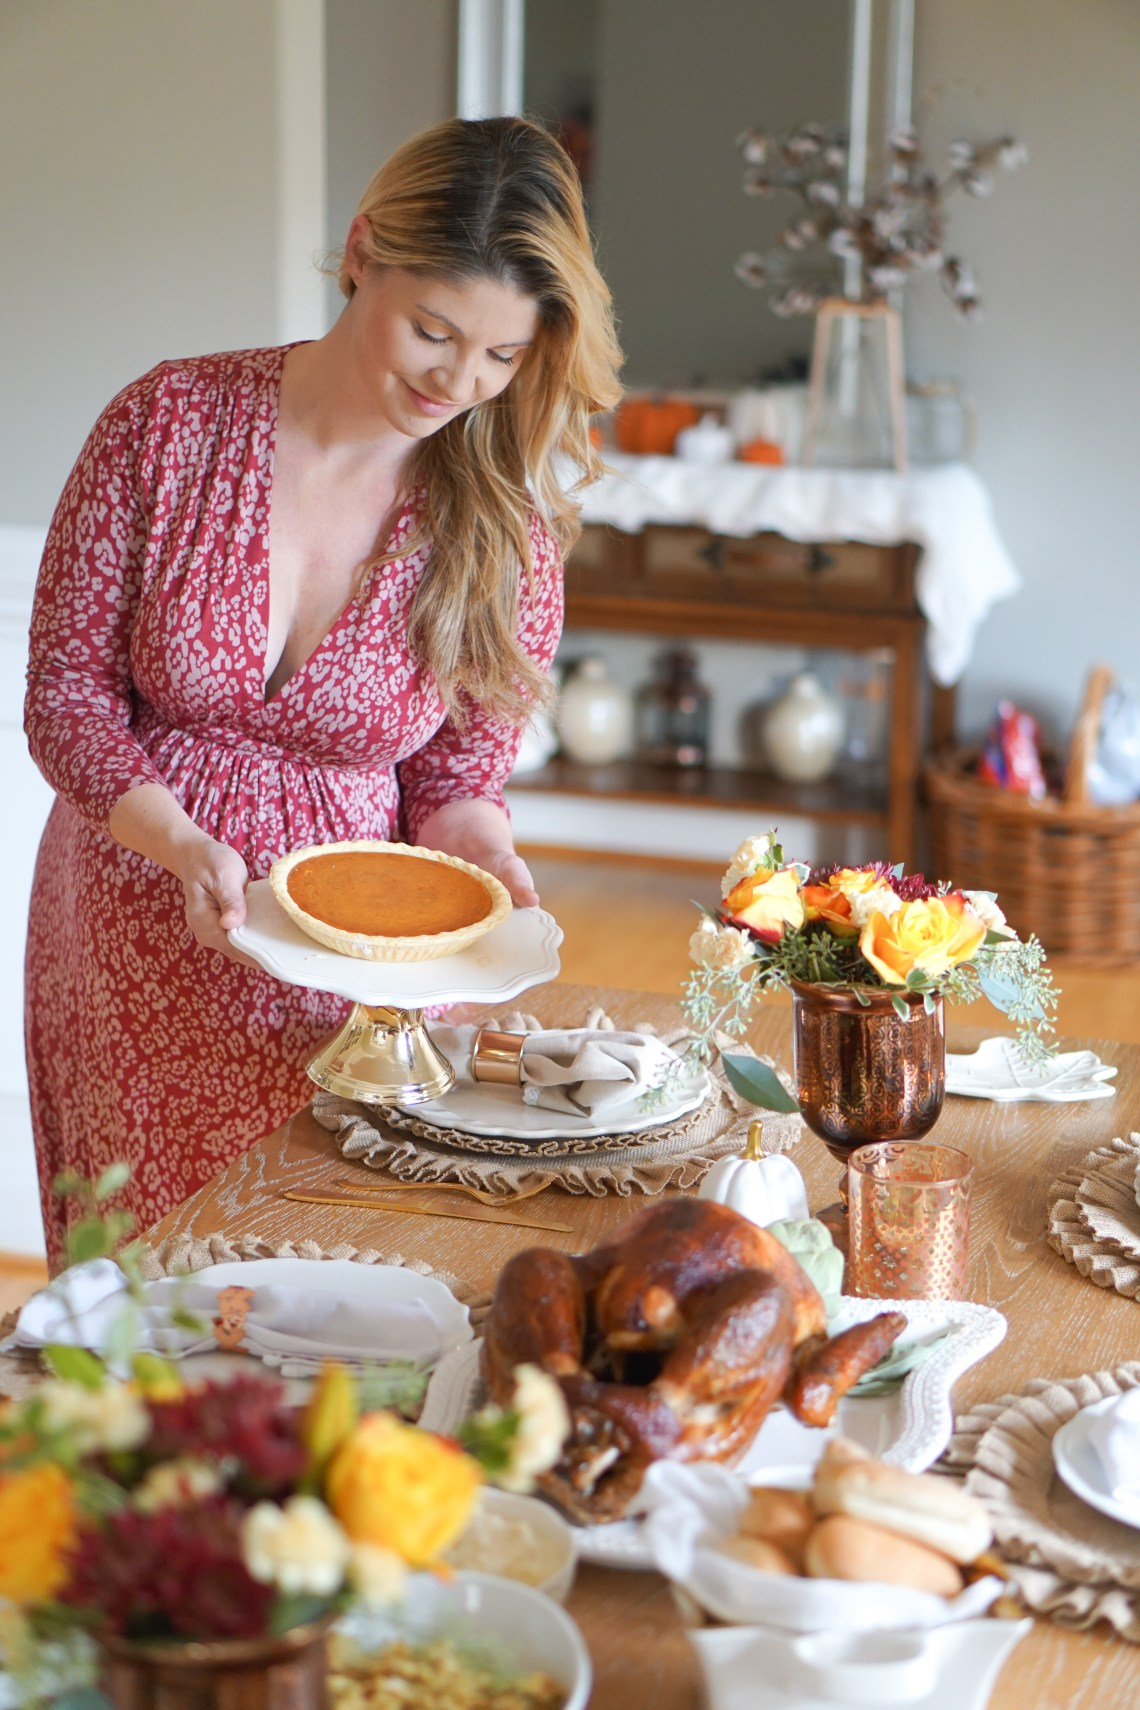 Thanksgiving Dinner Ideas - Boston Market Menu Complete Meal Delivery Holiday Feast via frostedevents.com @frostedevents